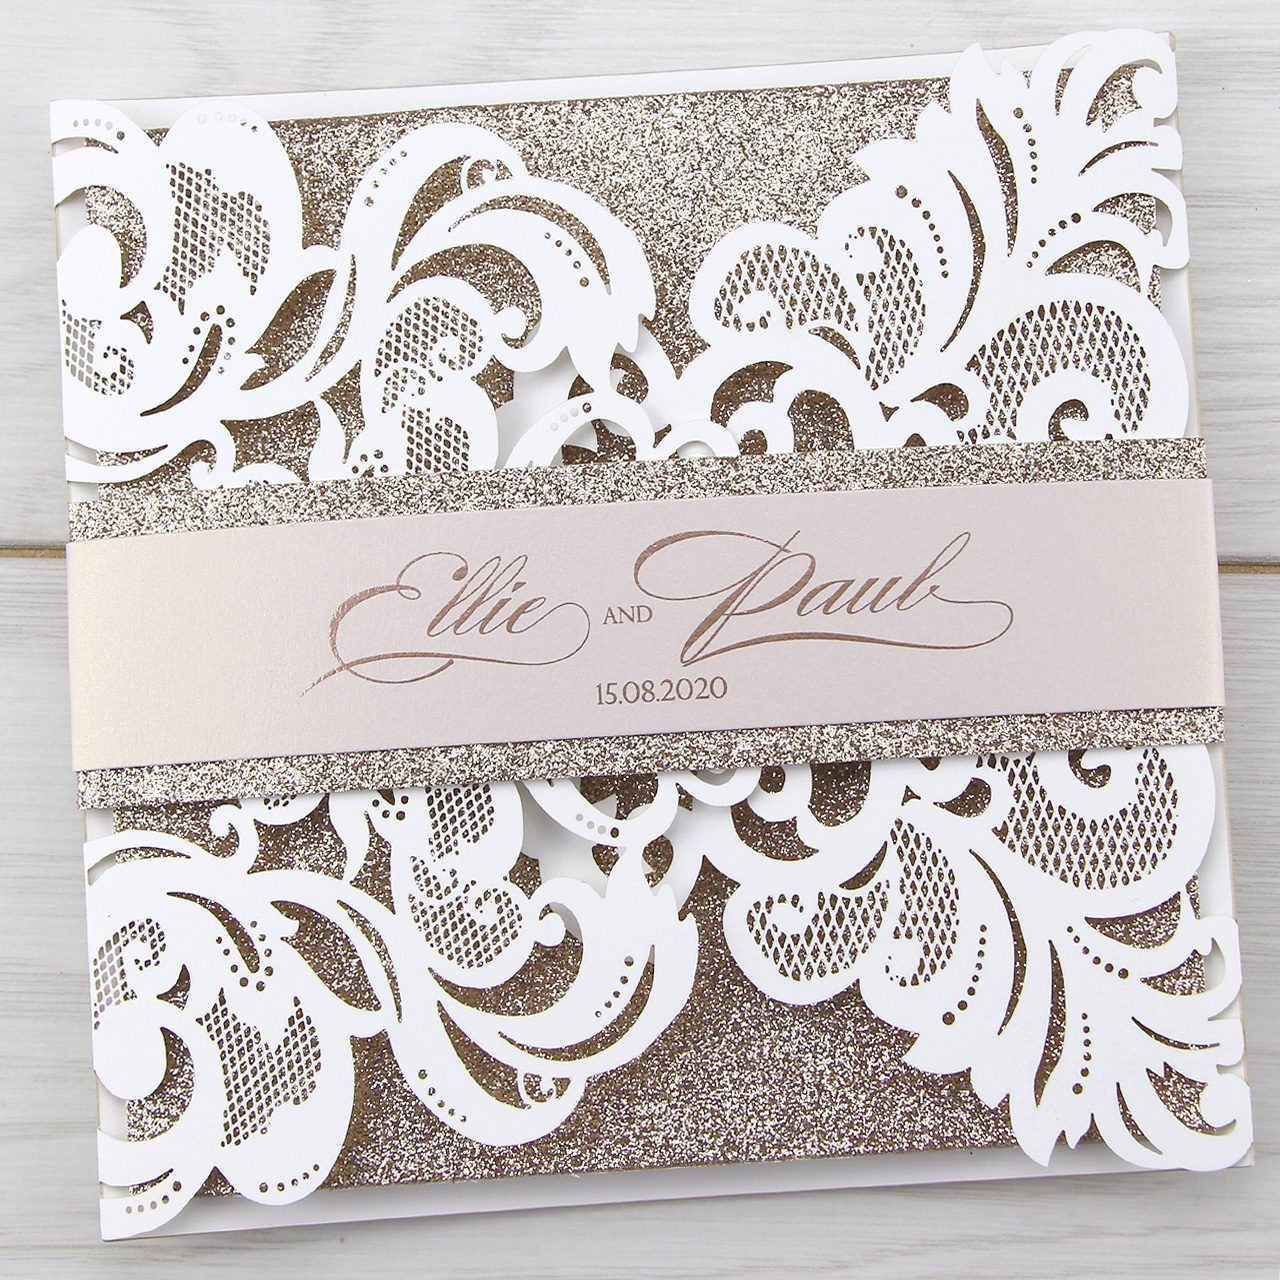 Wedding Laser Cut Invitations: Iris Laser With Glitter And Belly Band Wedding Invitation